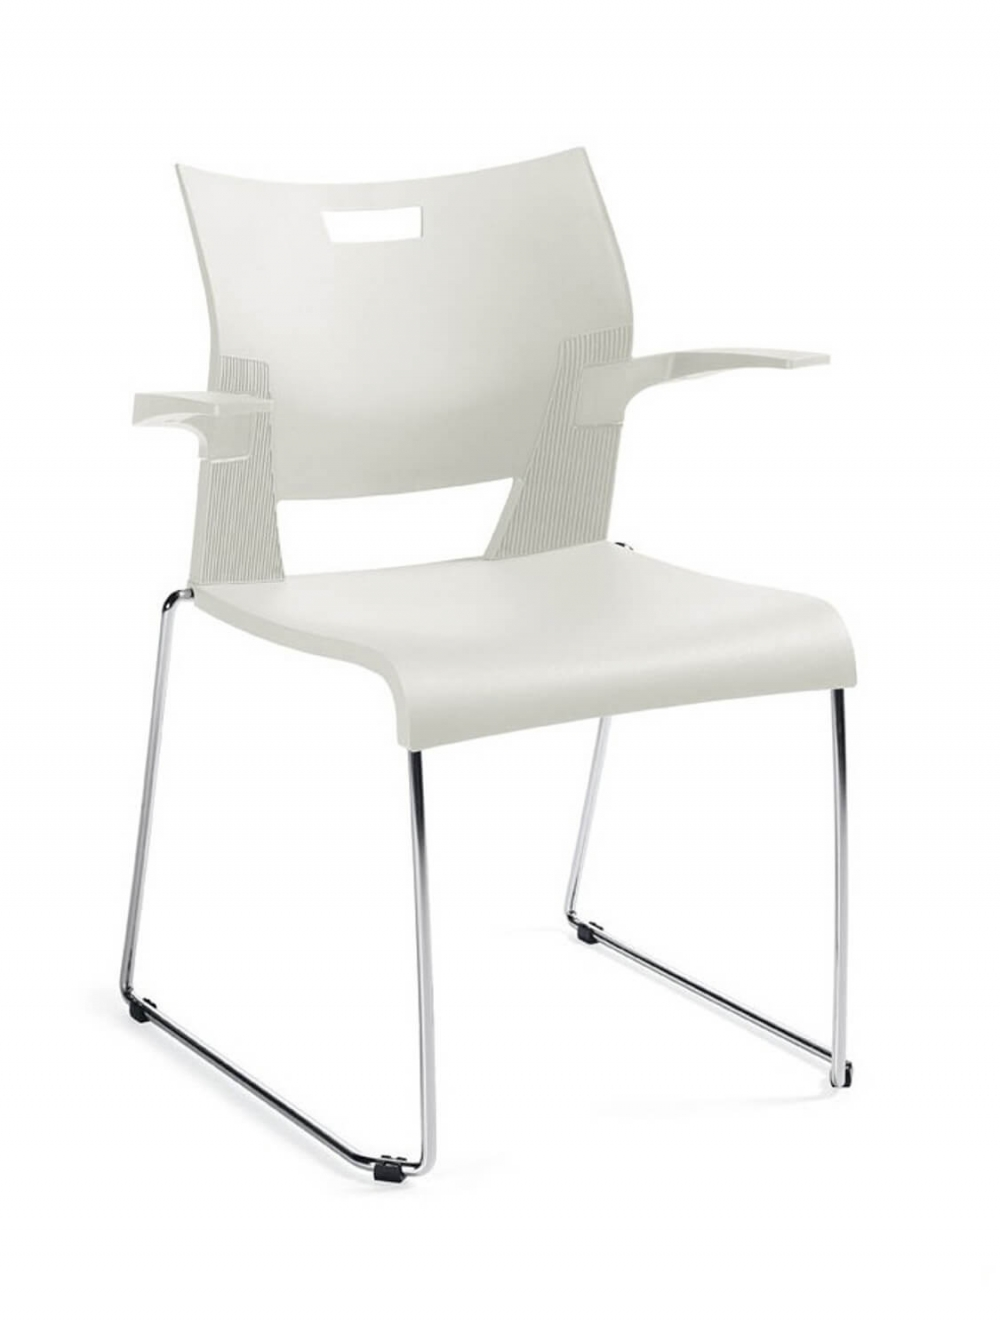 Guest chairs cub 6620 ivc glo